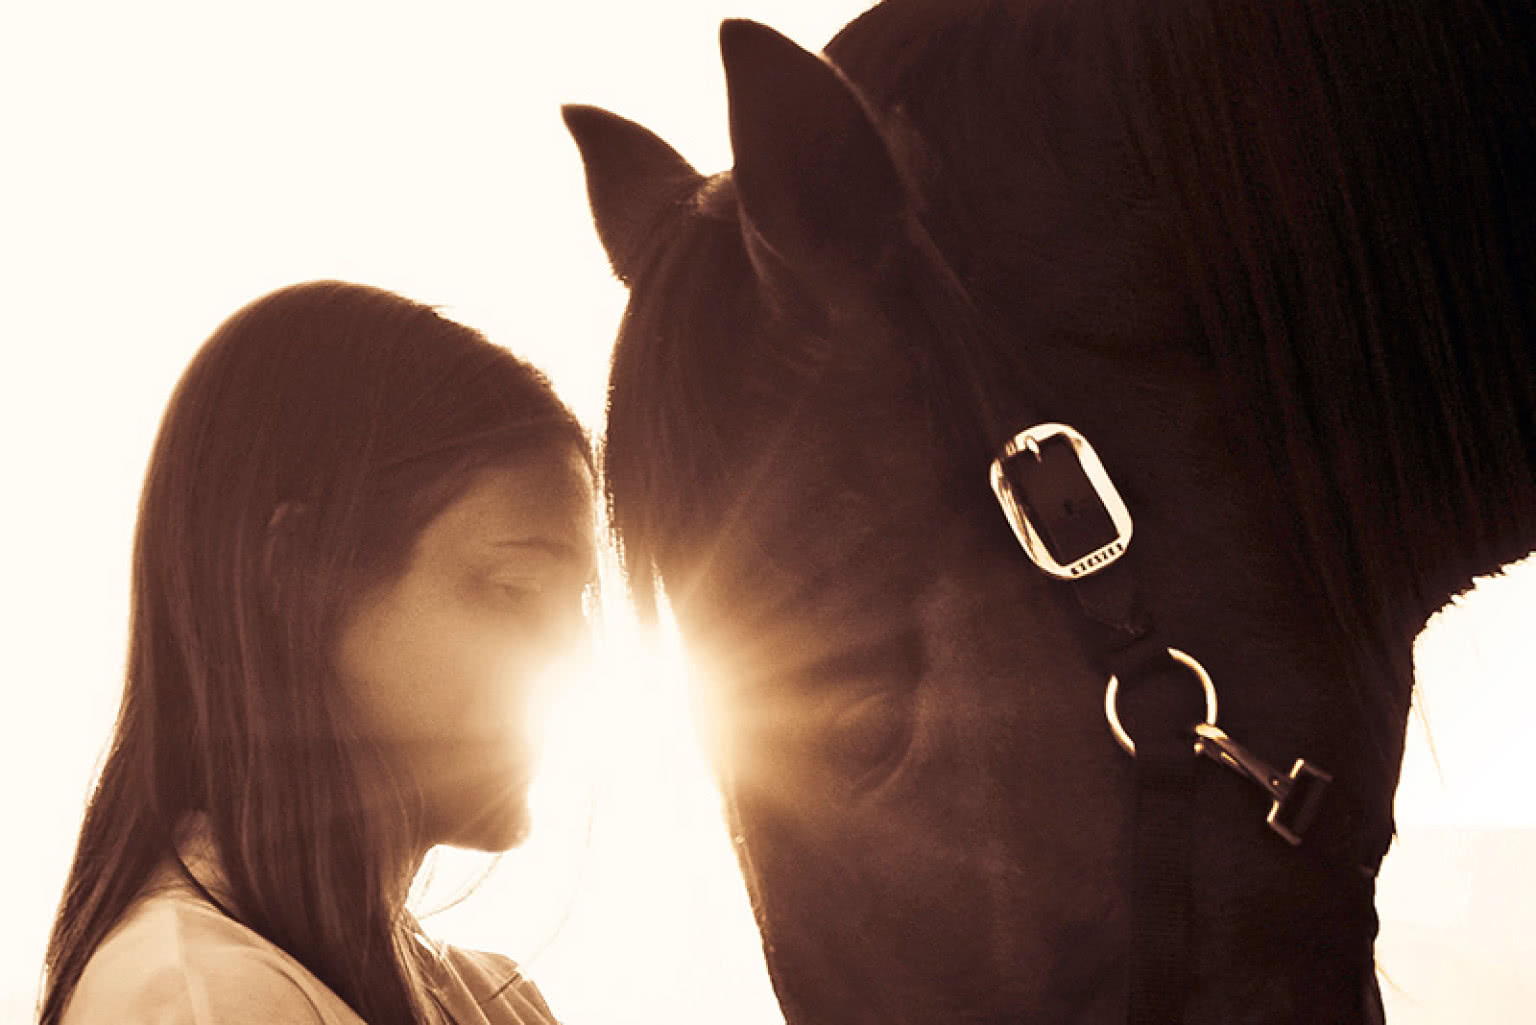 Equine Facilitated Therapy And Its Role In Addiction Treatment